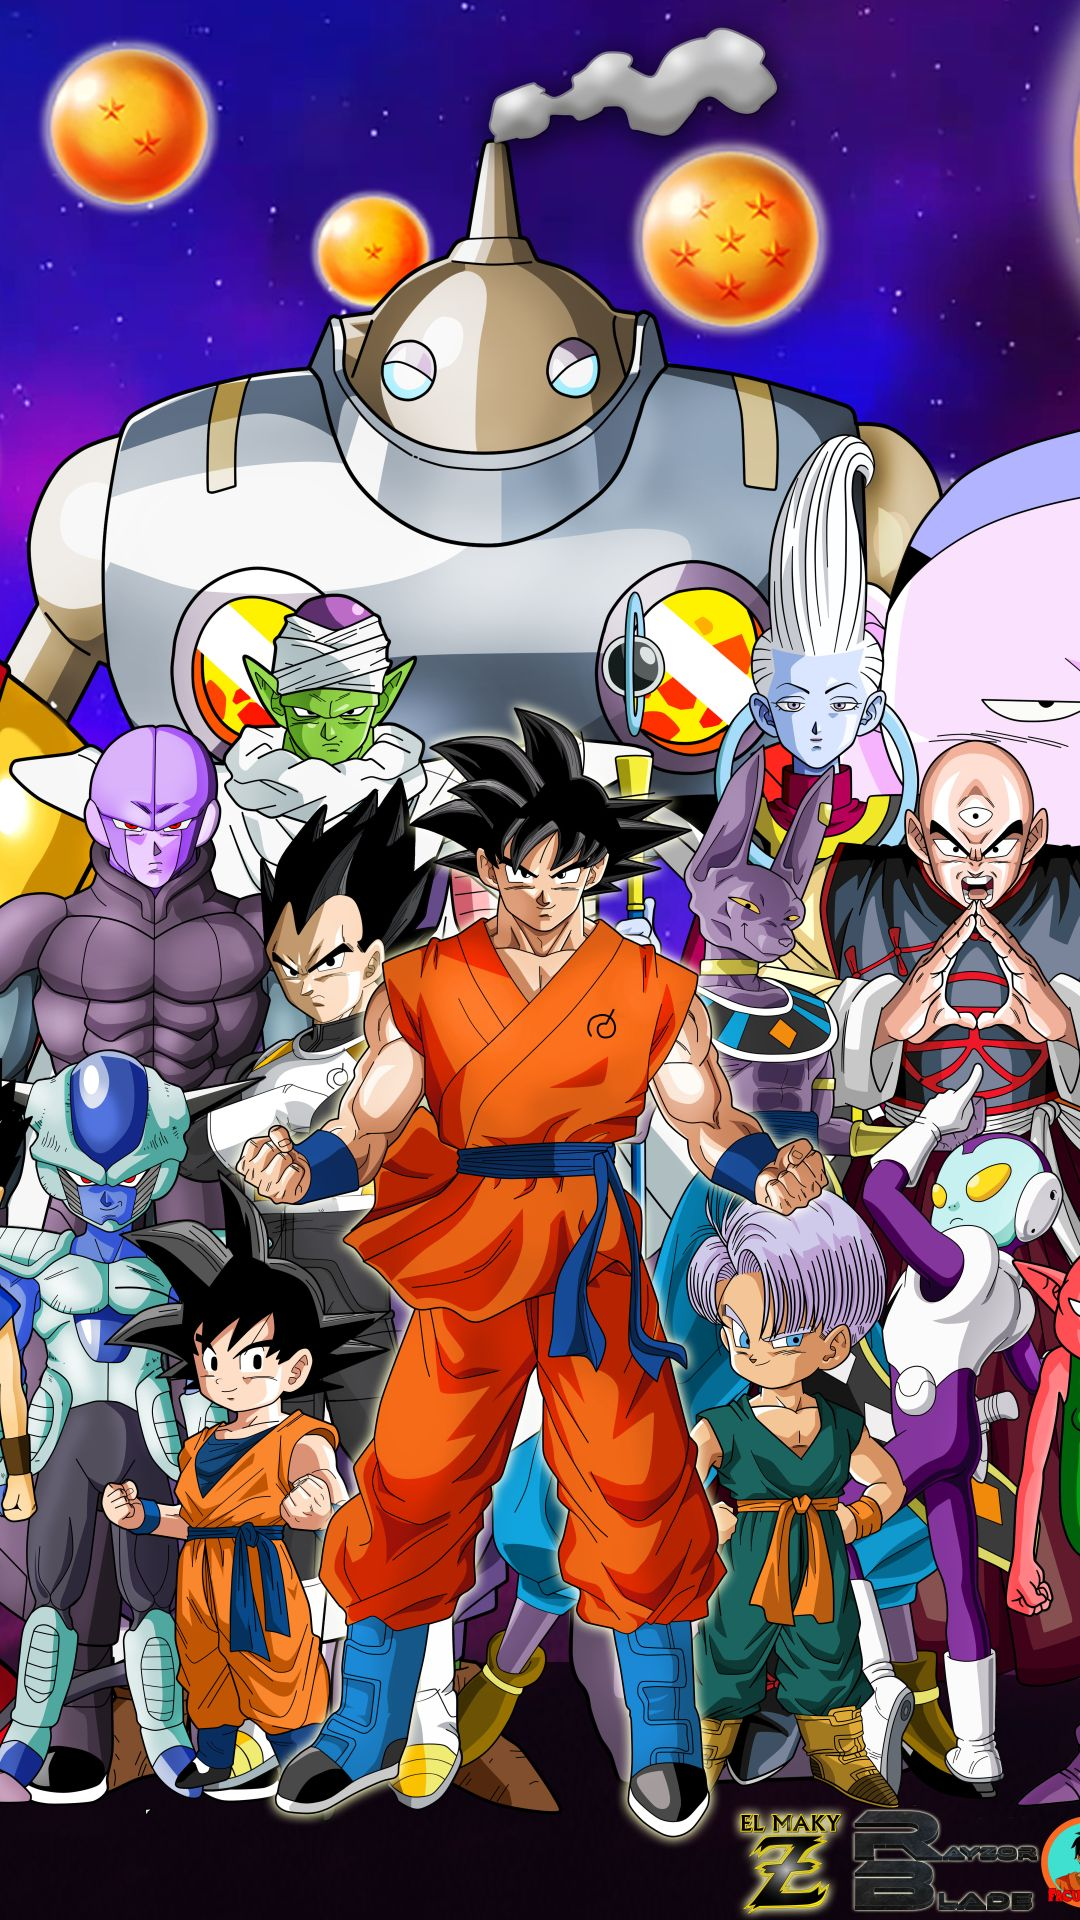 Dragon Ball Z iPhone Wallpapers   Top Dragon Ball Z iPhone 1080x1920